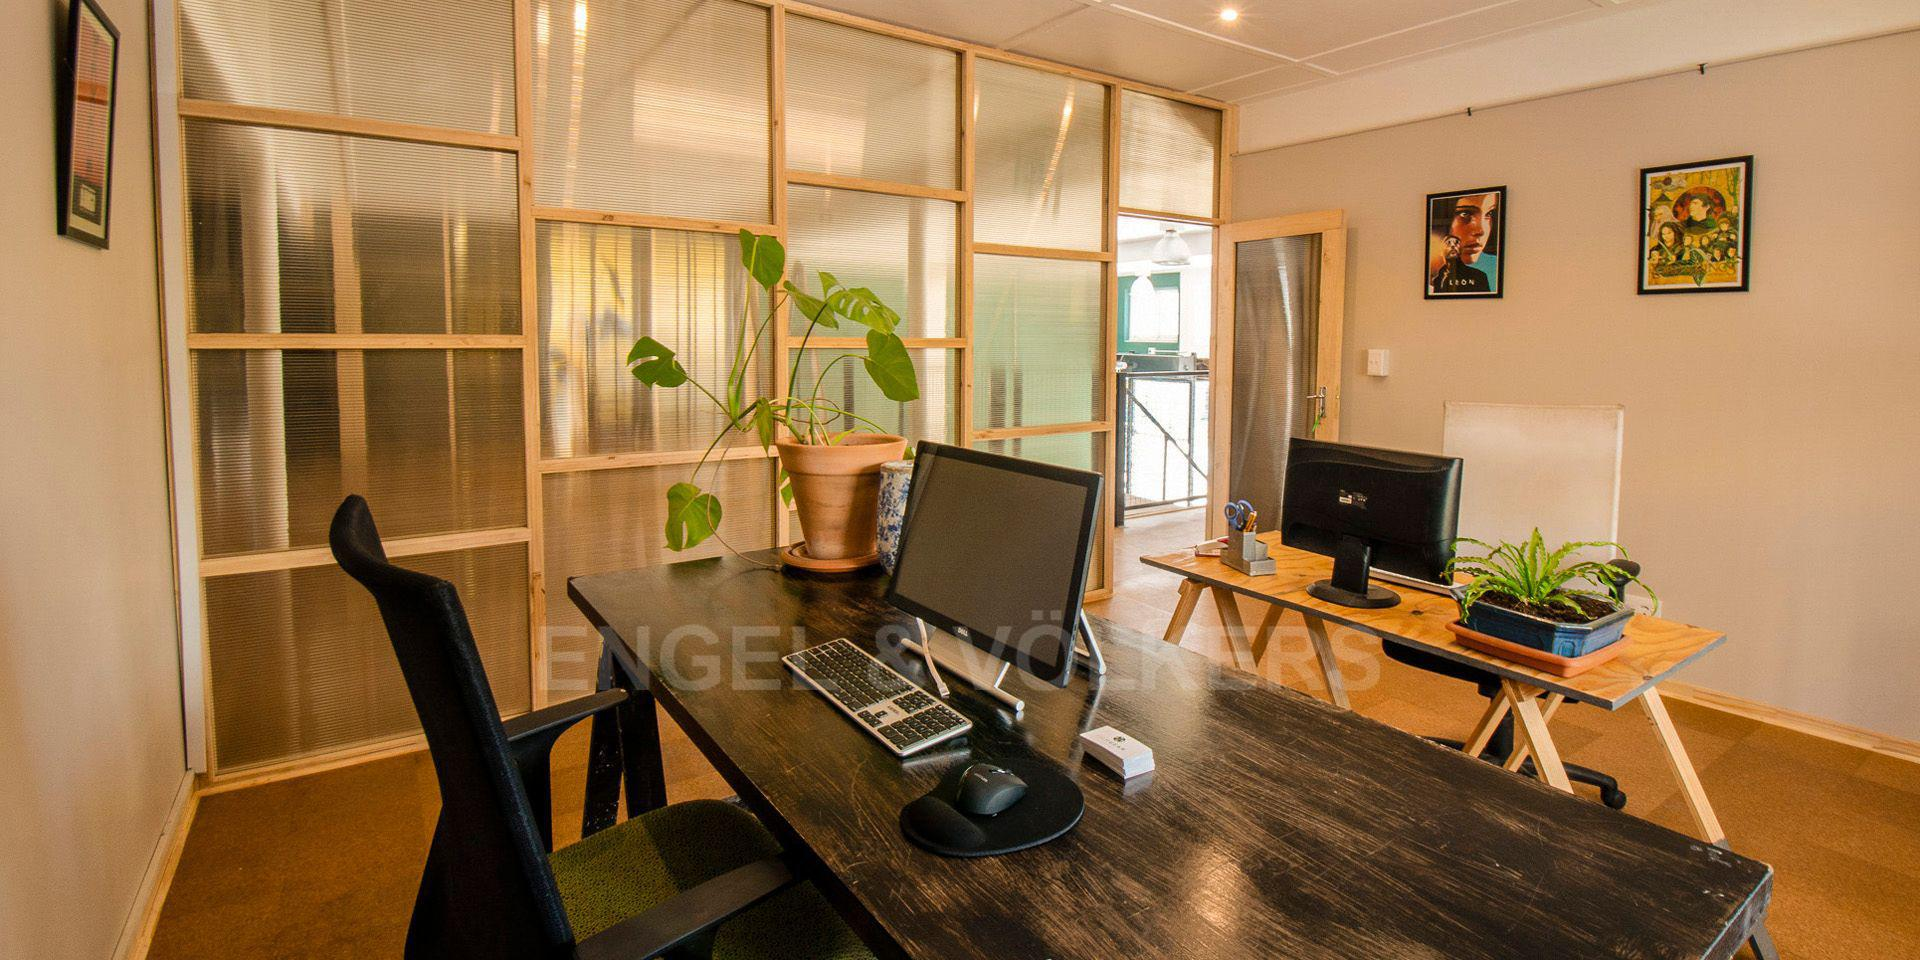 Office in Woodstock - Office (furnished)